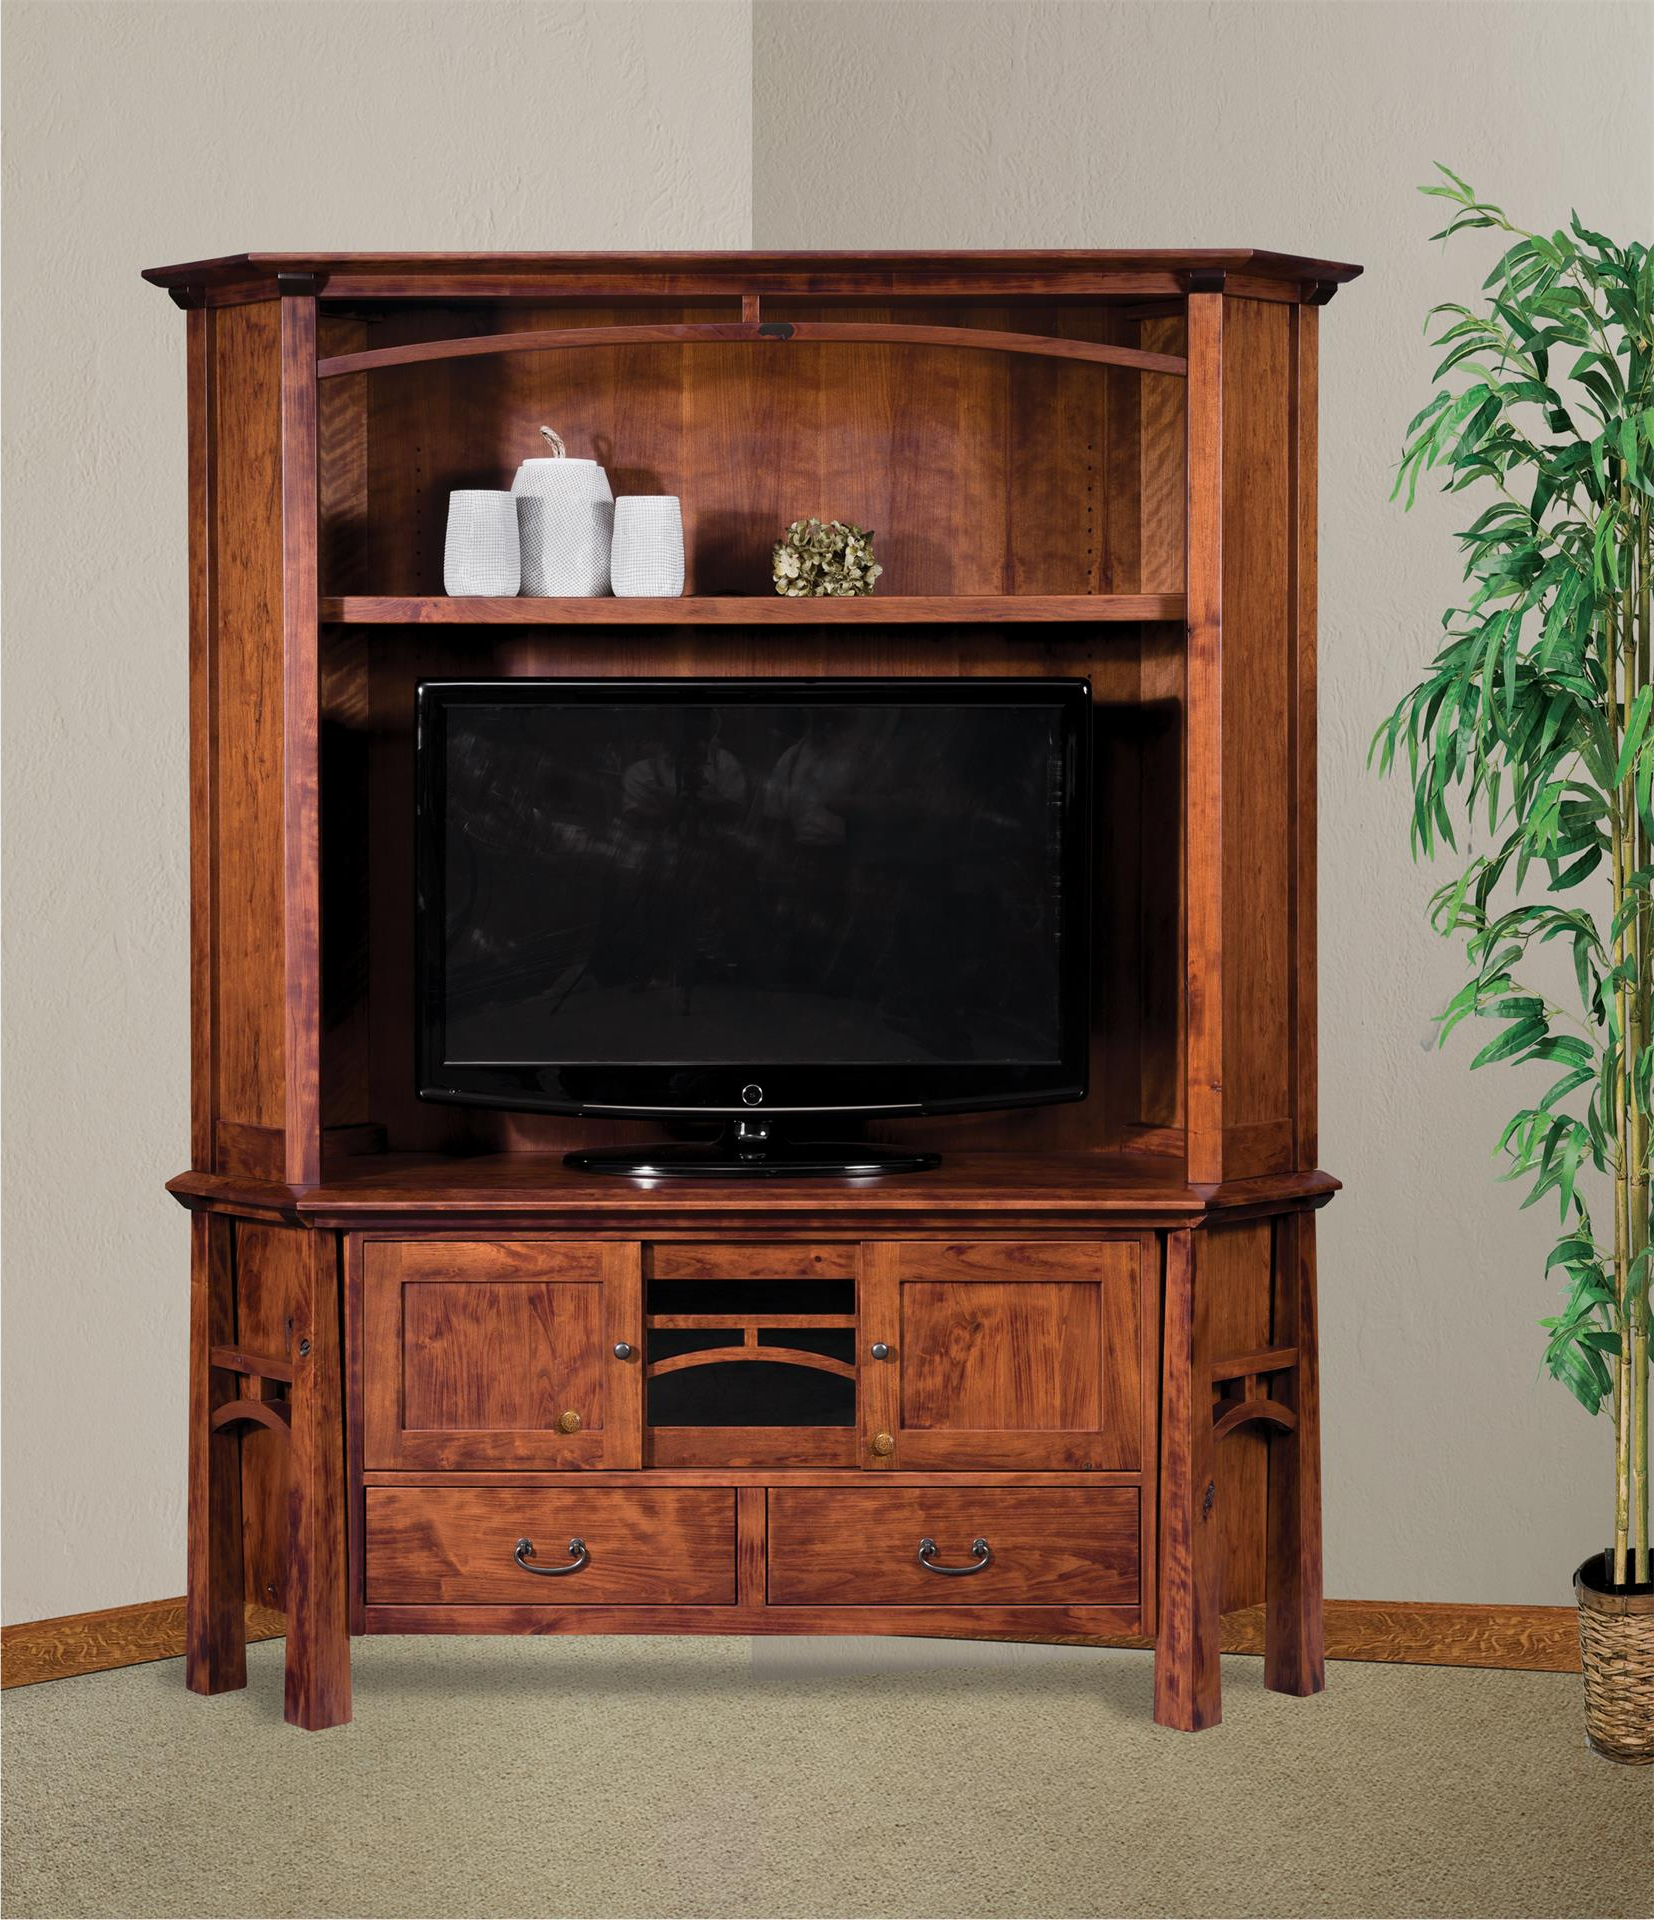 Lucy Cane Cream Corner Tv Stands Throughout Most Recent Amish Artesa Two Piece Corner Entertainment Center With Hutch (View 15 of 25)